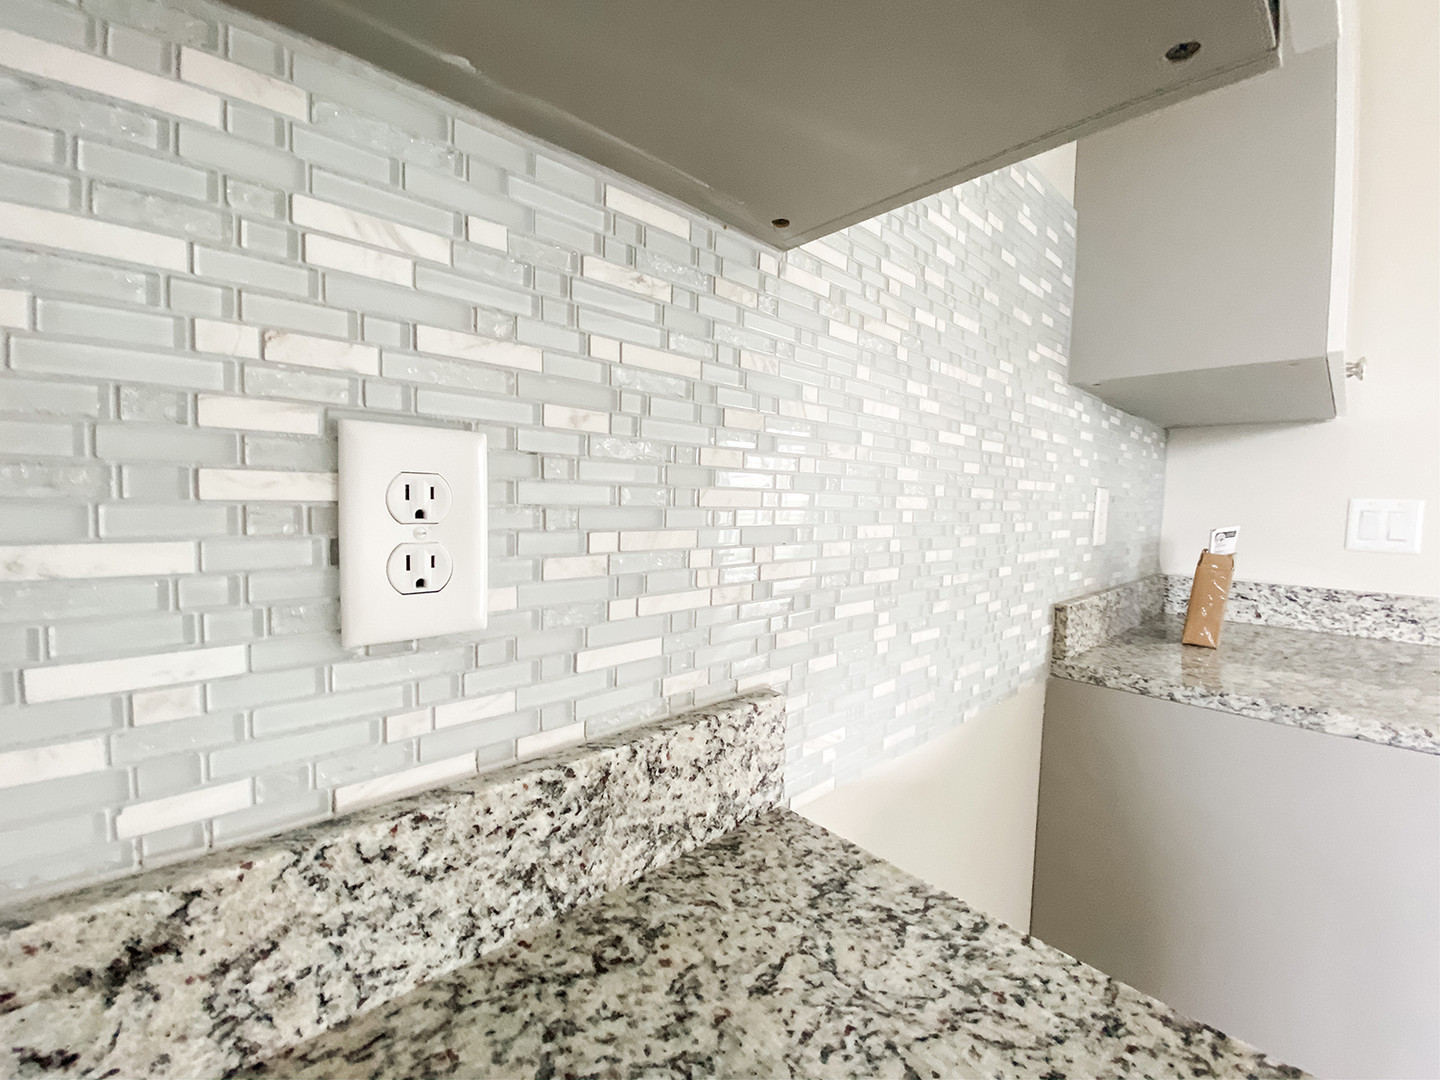 601 Dunlin Lane - Kitchen Backsplash.jpg